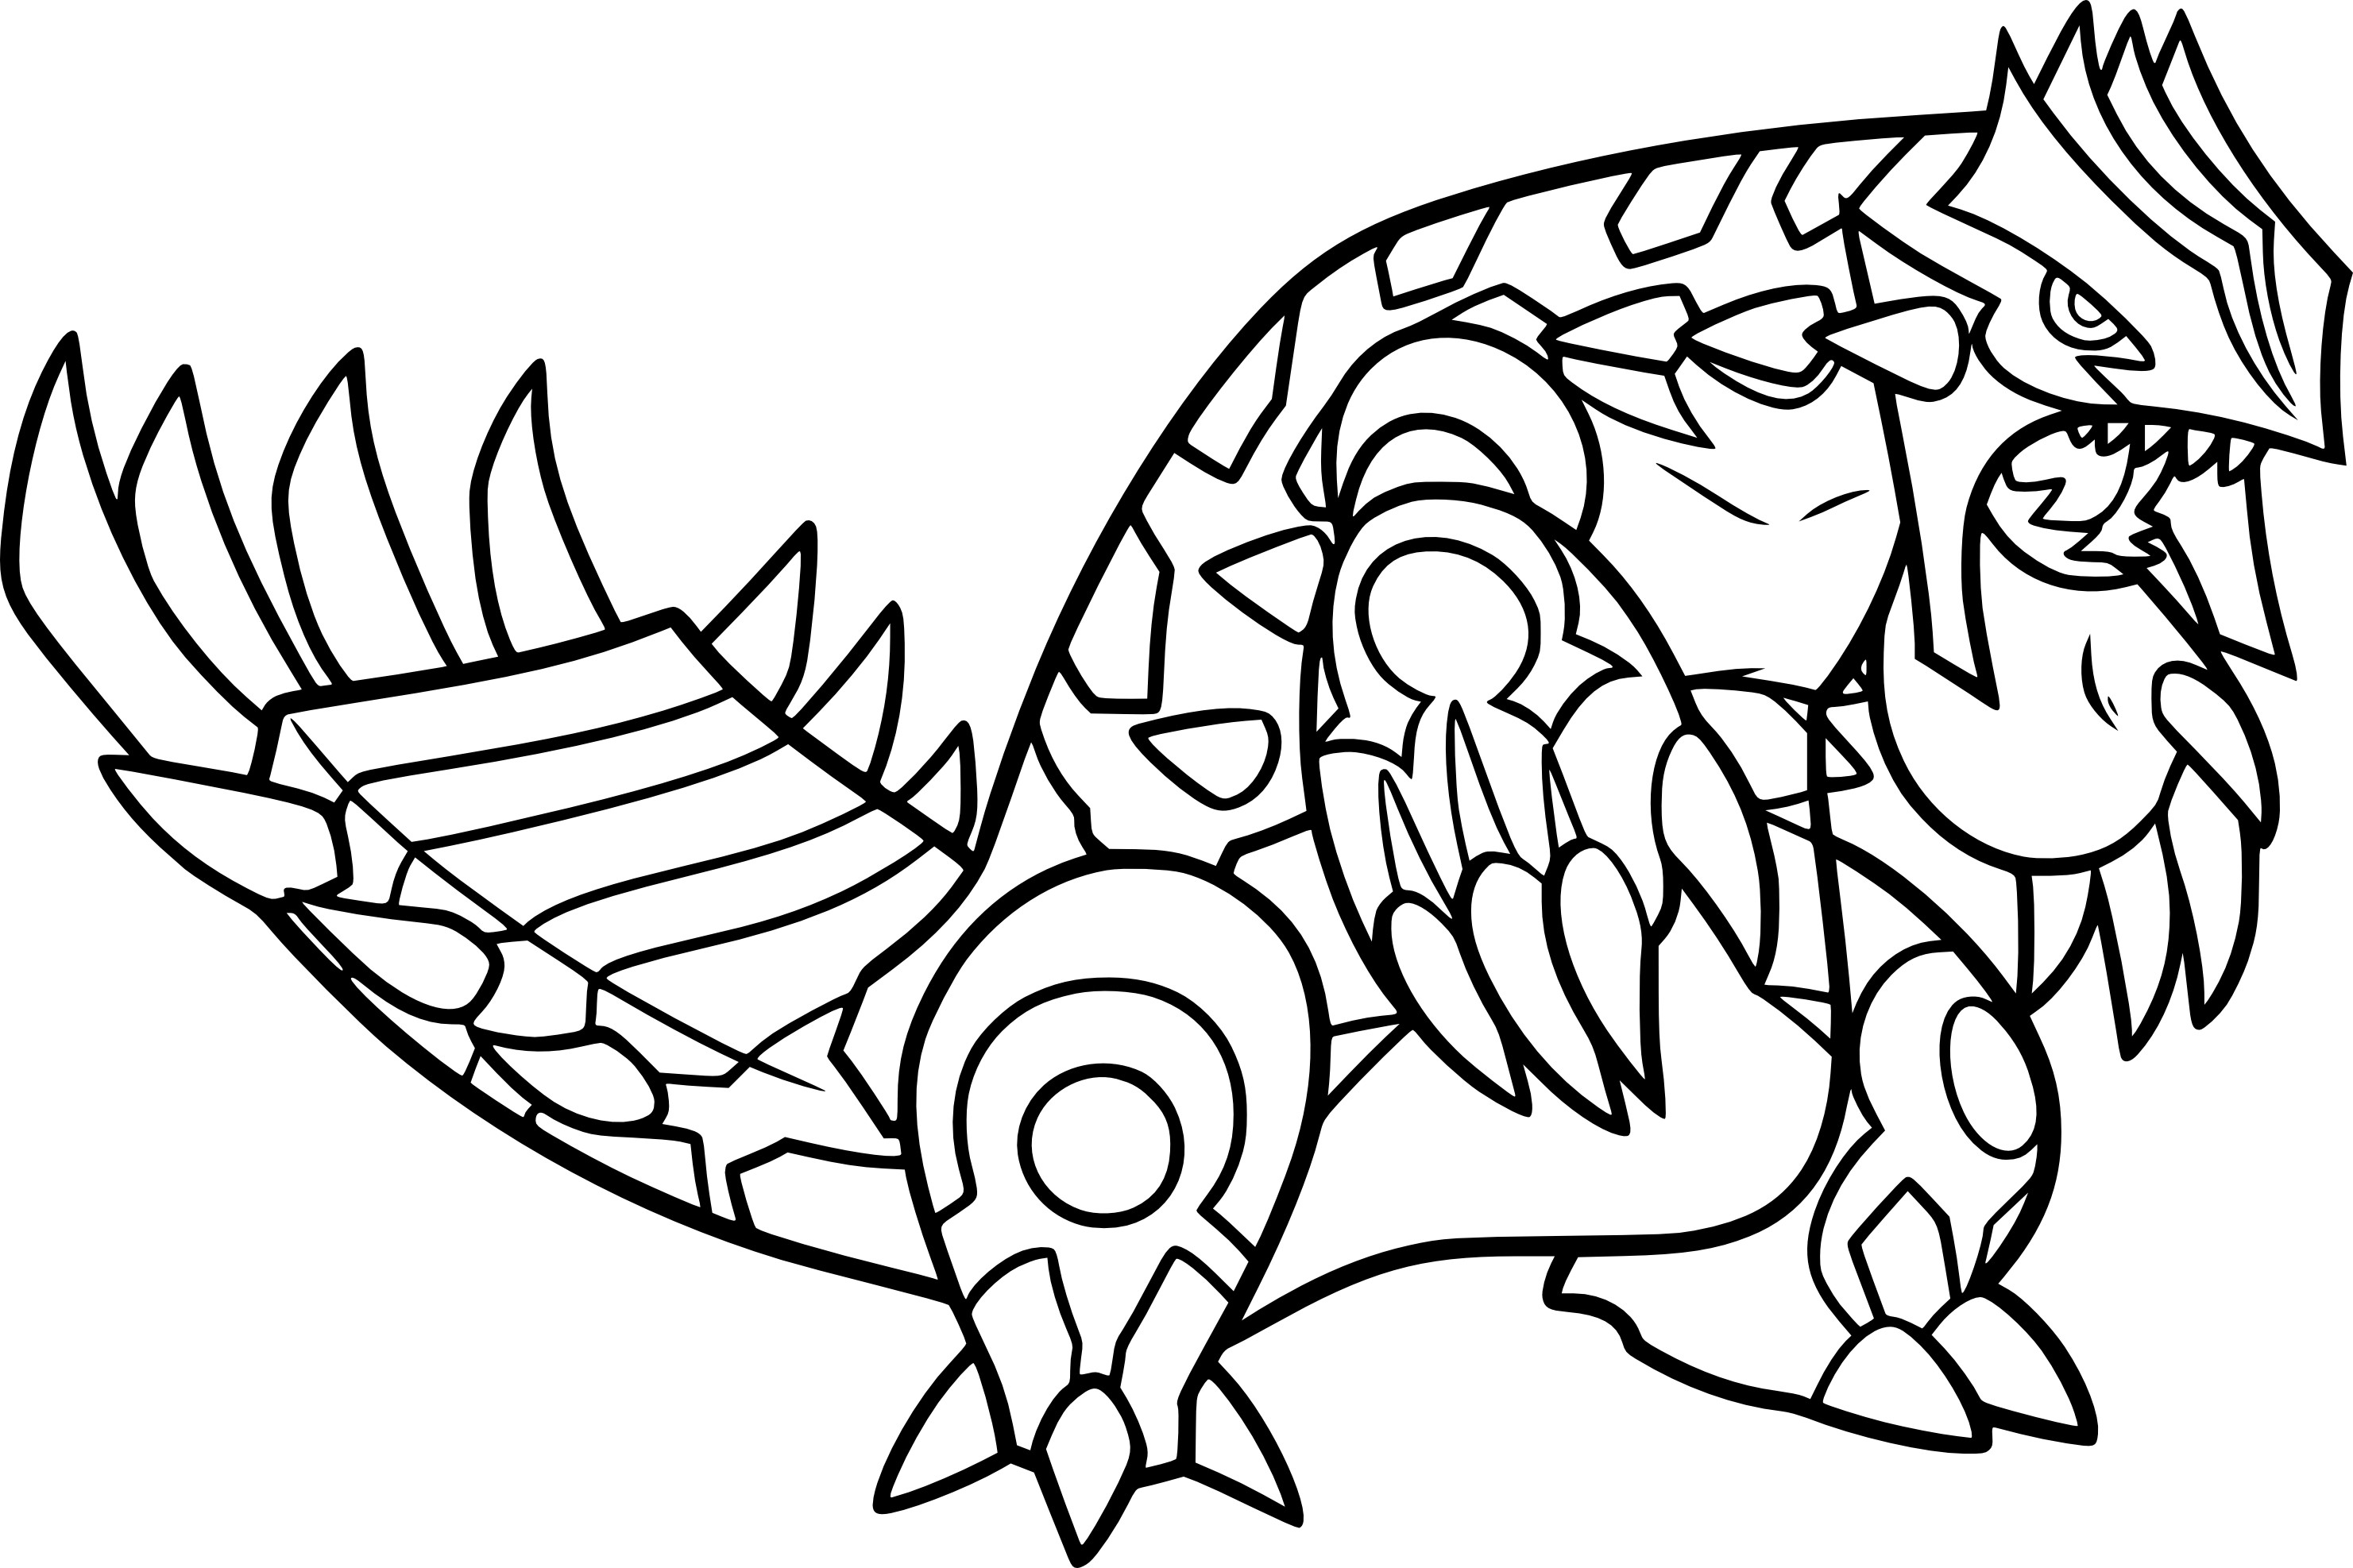 Coloriage Primo-Groudon